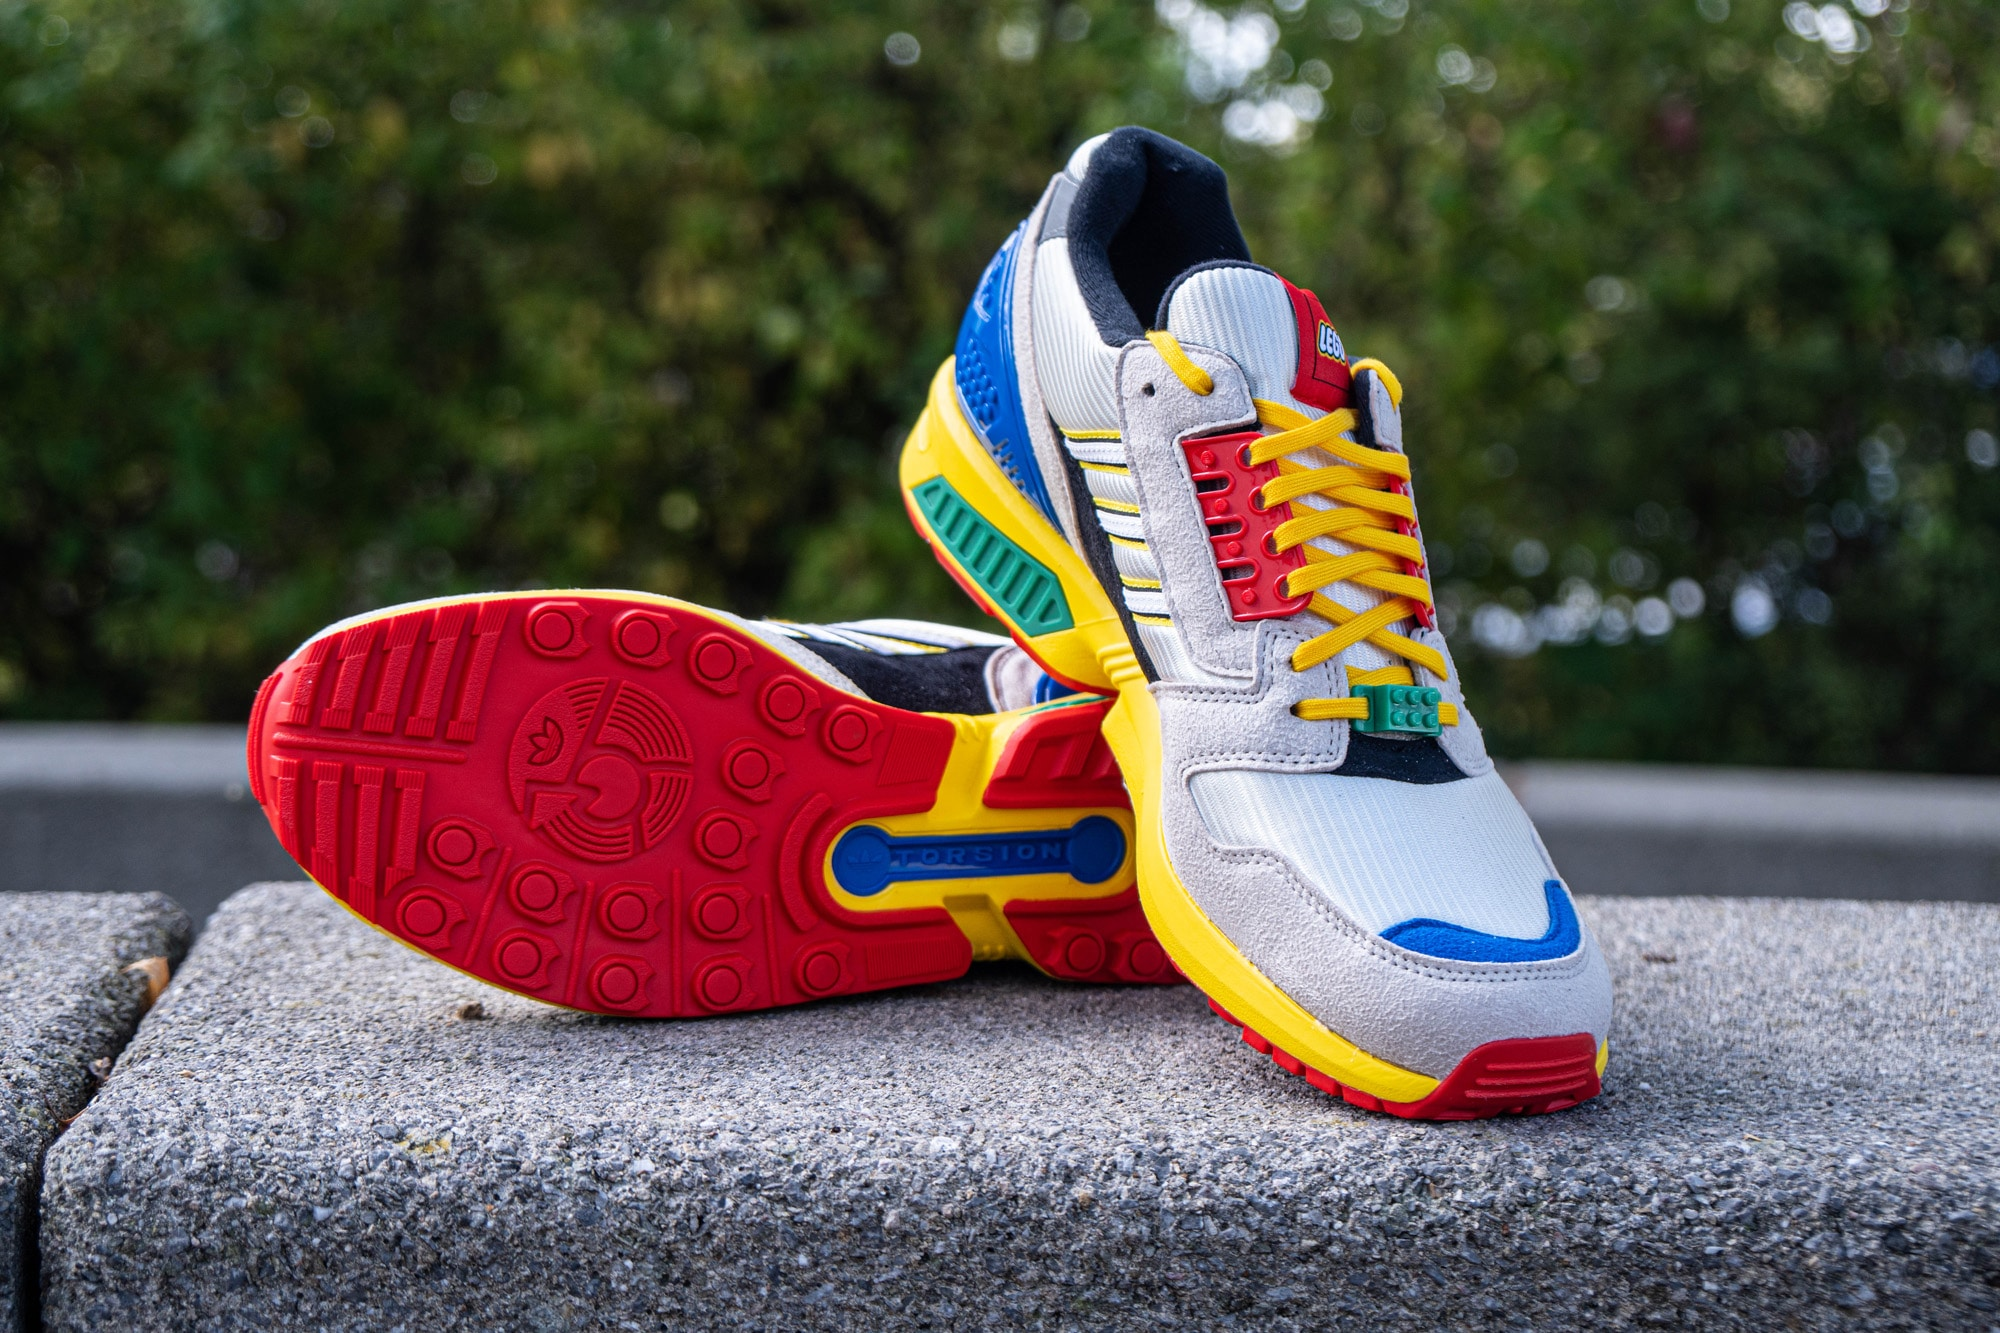 LEGO X Adidas Zx 8000 Review 1